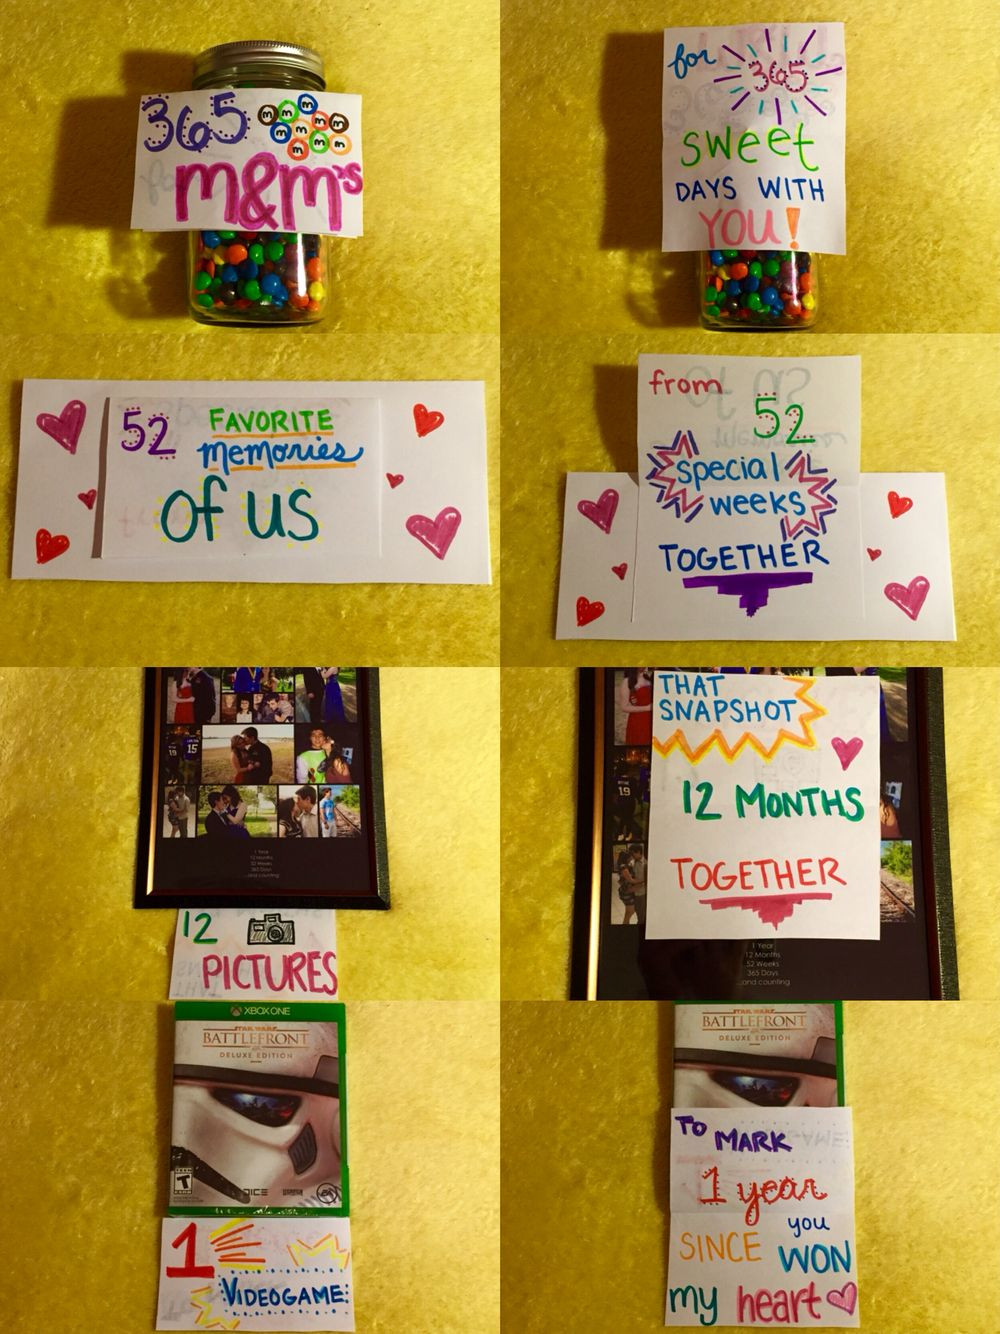 Gift Ideas For One Year Anniversary For Boyfriend  Made for my boyfriend for our 1 year anniversary